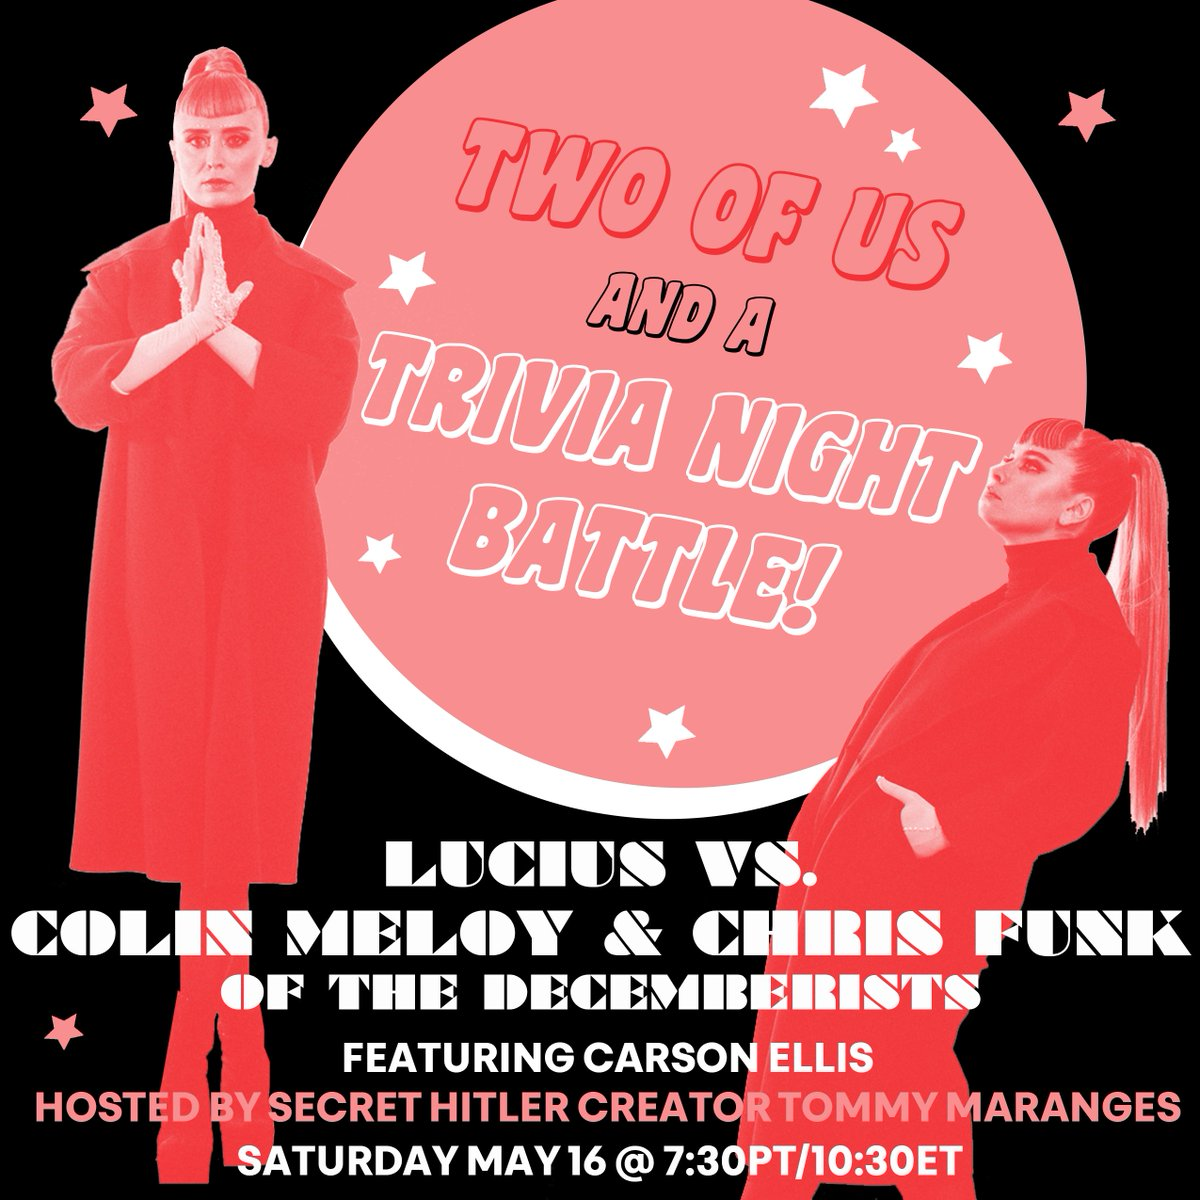 Join us this Saturday for a trivia night battle between Lucius and Colin Meloy & Chris Funk of @TheDecemberists! ⁣⁣Follow along and keep score against these fine musicians in a battle of the dystopian COVID era wits 😷   RSVP for Zoom link to join -> https://t.co/w6ImqkQKJA https://t.co/qqzagNRhsj